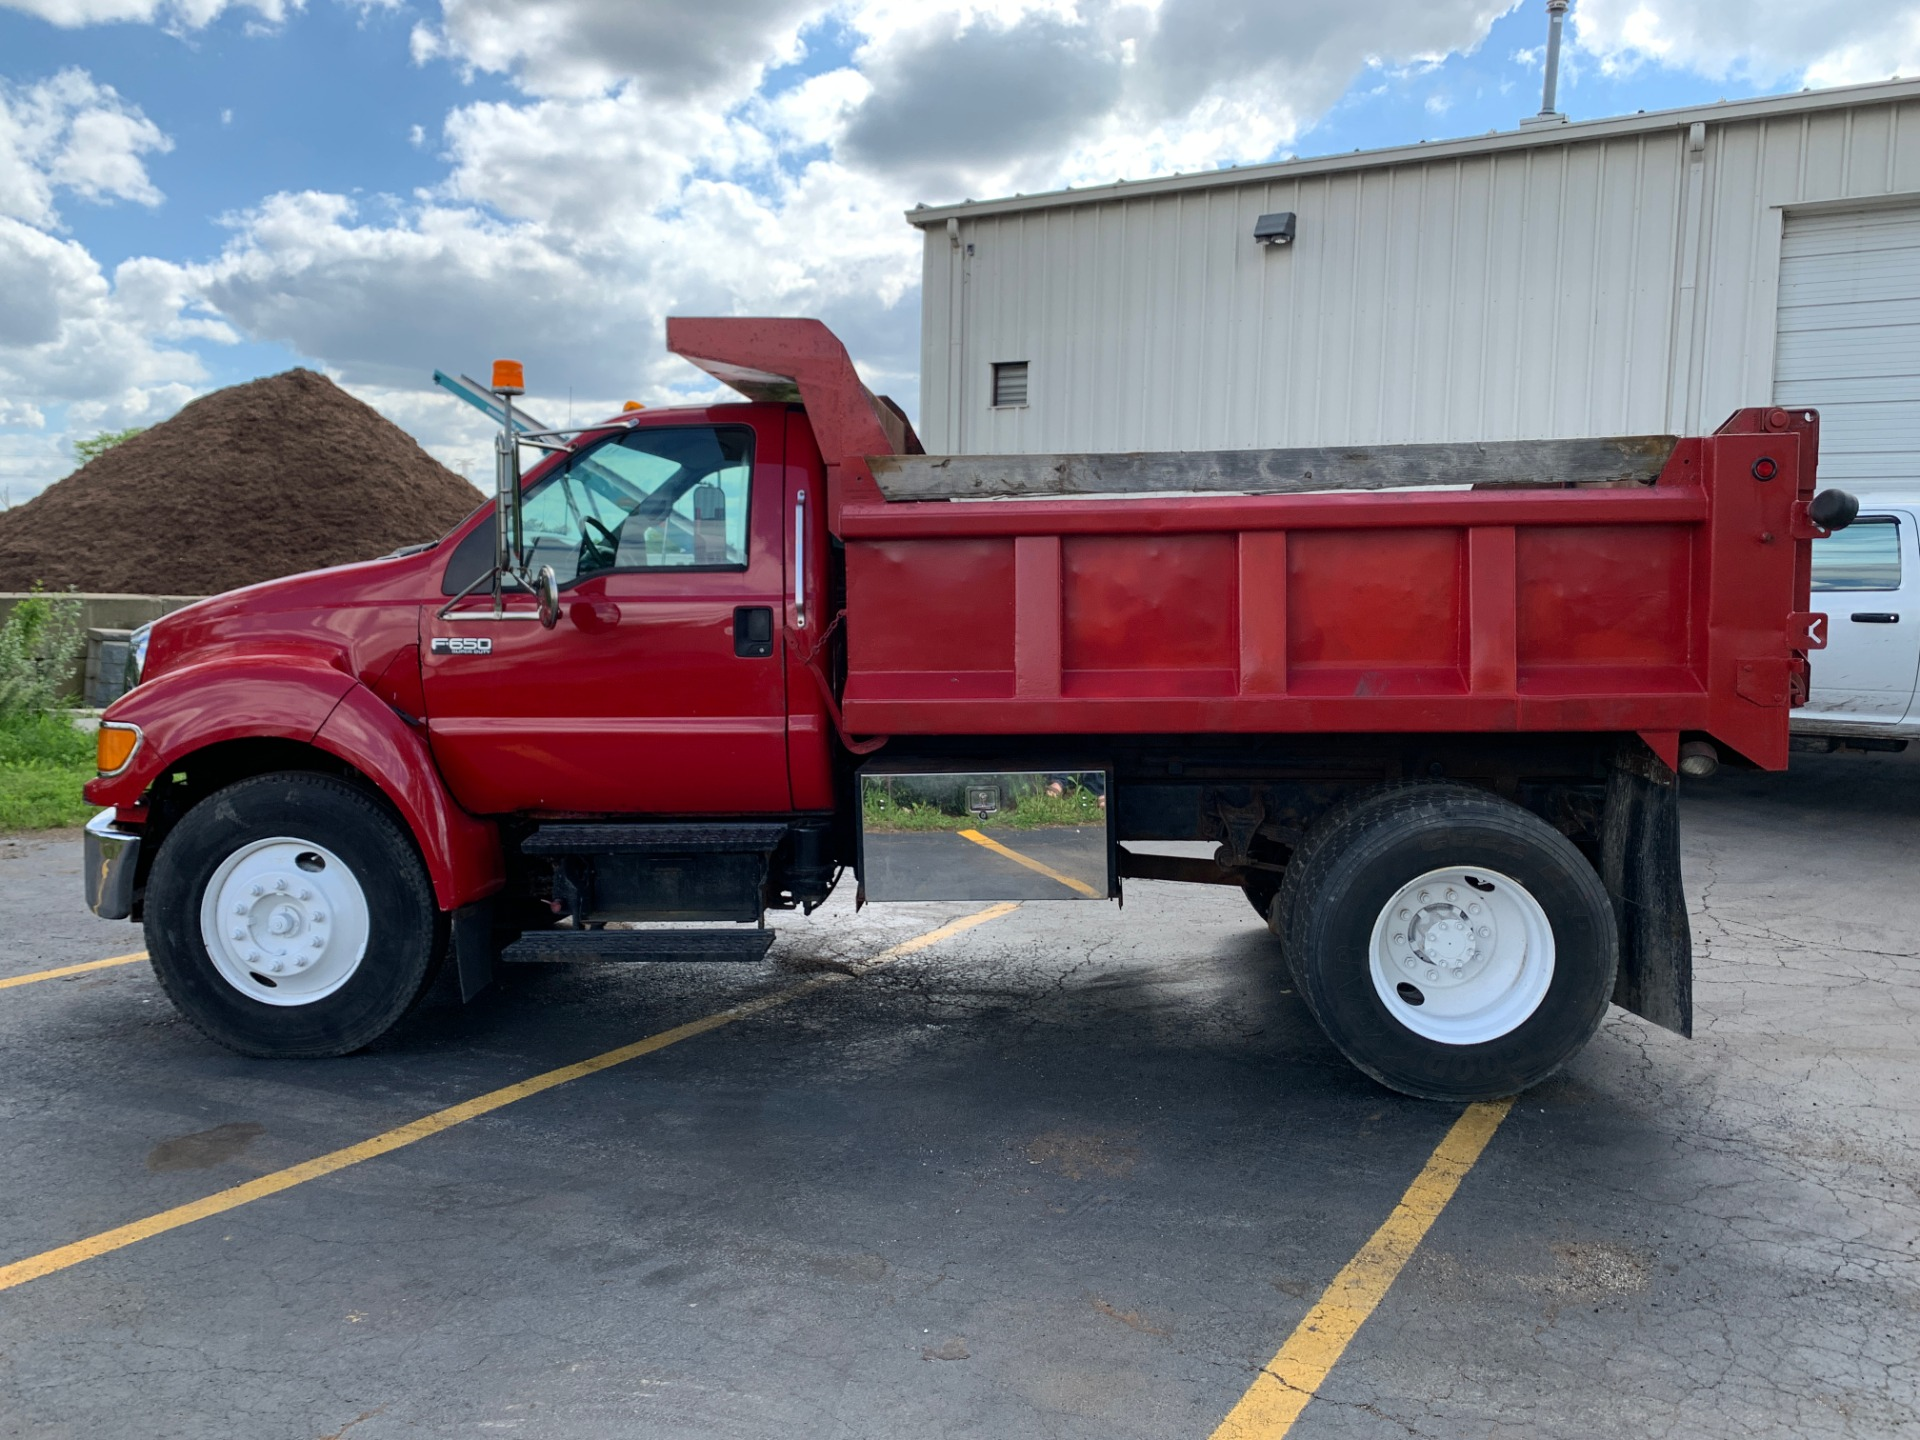 Used-2006-Ford-F650-SUPER-DUTY-Dump-Truck---CAT-DIESEL